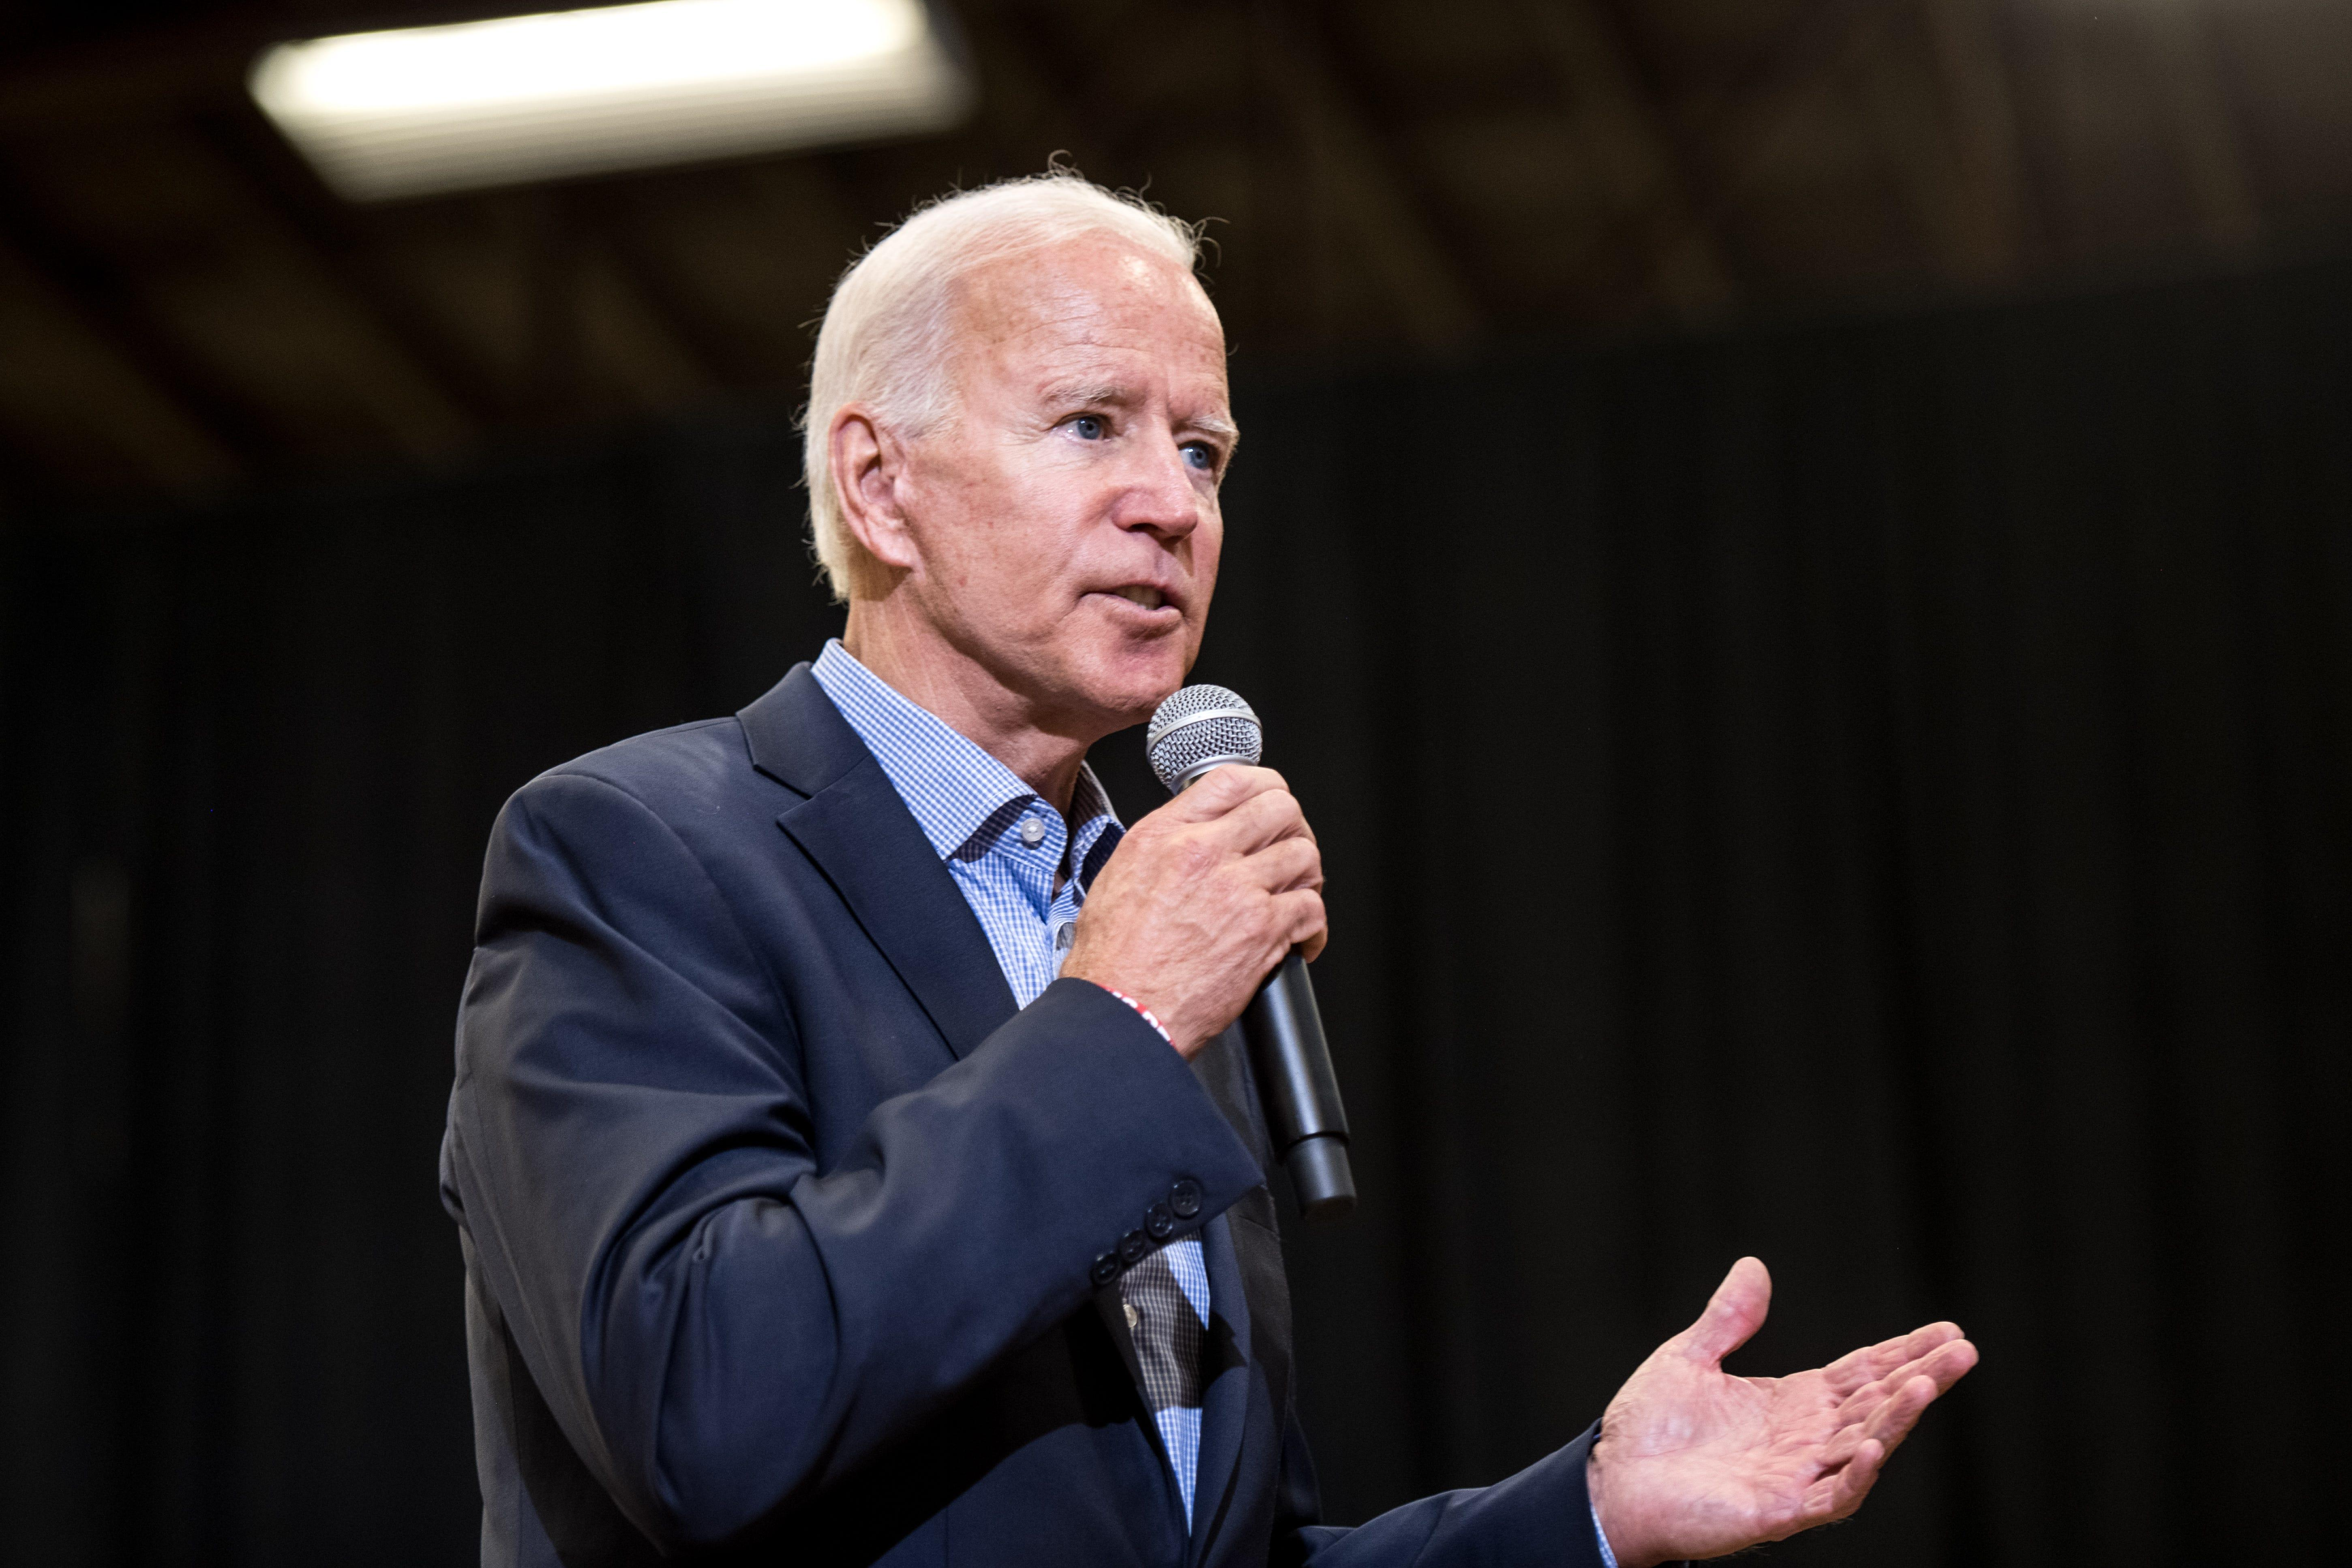 Joe Biden attended fundraiser hosted by fossil fuel company co-founder despite backlash